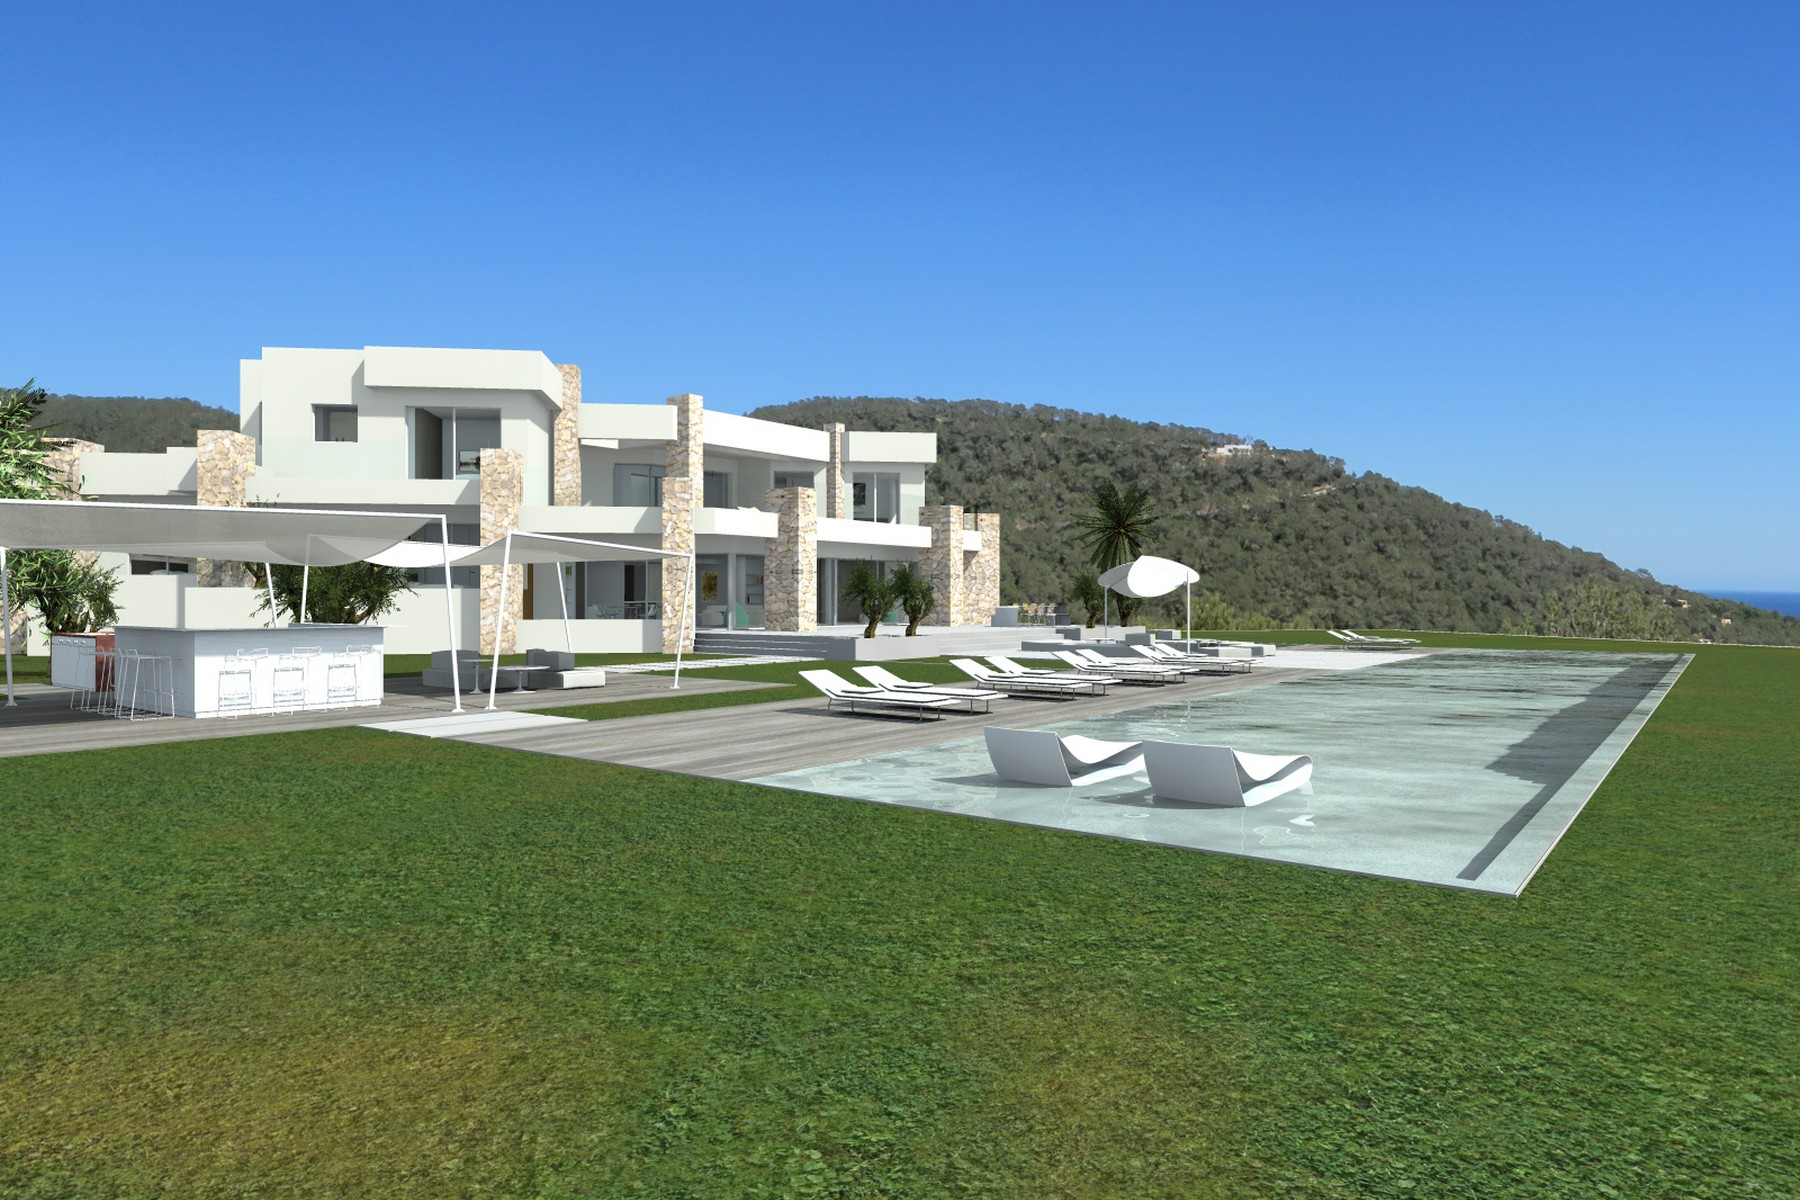 Single Family Home for Sale at Hilltop Villa With Panoramic Sea Views Sant Josep, Ibiza, 07830 Spain